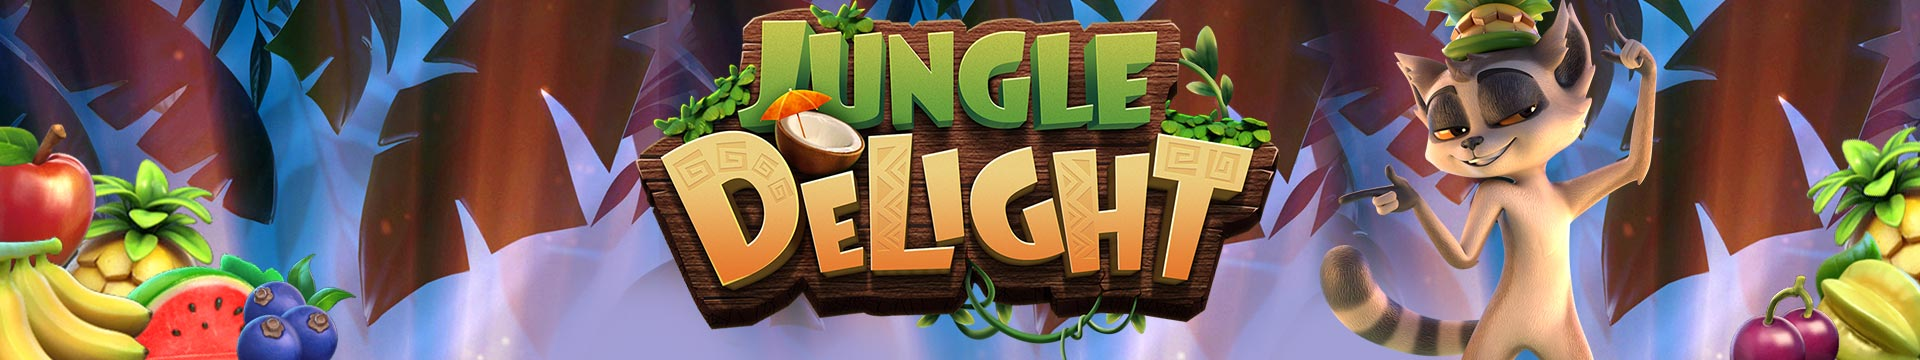 Jungle_Delight